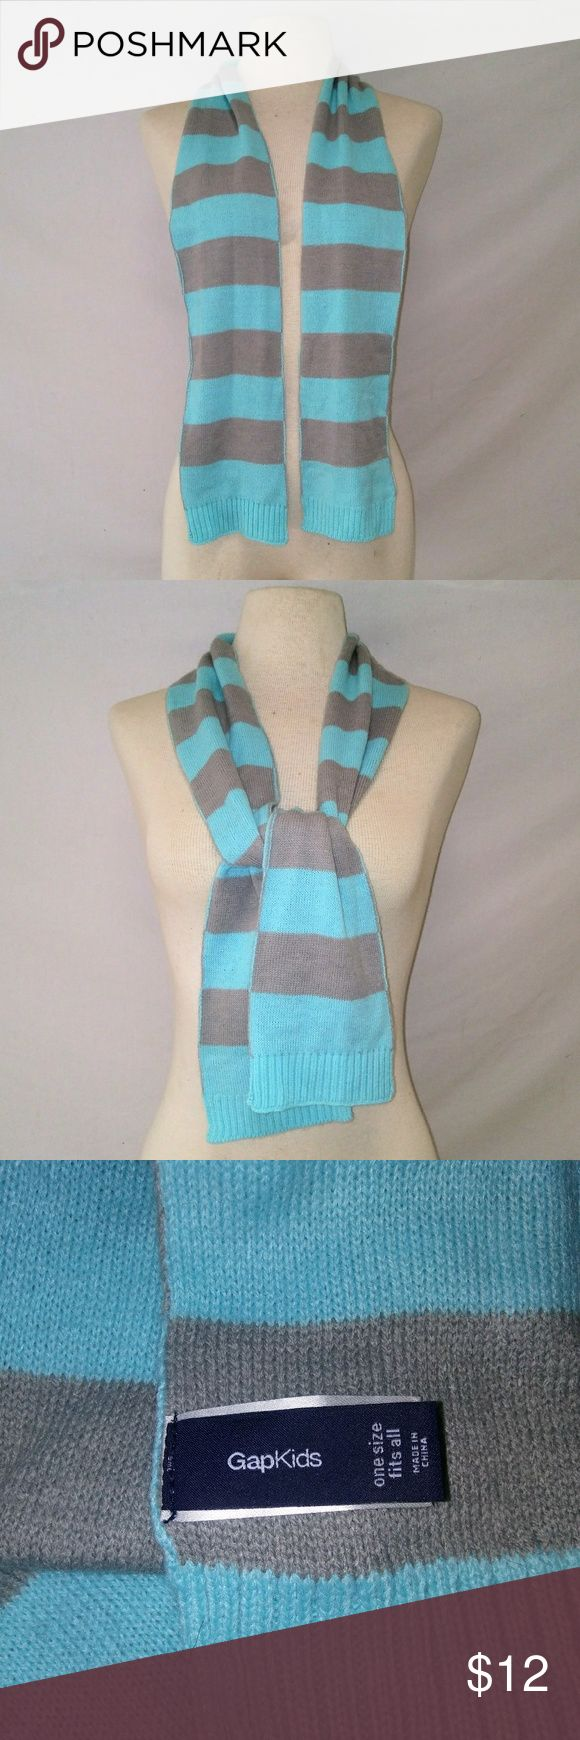 GAP Kids Striped Winter Scarf Turquoise & Gray Striped Soft Acrylic Scarf by Gap Kids.  In excellent used condition. From a smoke free home. Make an offer! BUNDLE & Automatically Get 20% Off on 2+ Items.  New Feature Alert: Bundle one or more items and I'll make you a customized awesome offer! Just bundle and wait for my offer... Up to 40% off - the bigger the bundle the bigger the savings! *2017 SUGGESTED USER* GAP Accessories